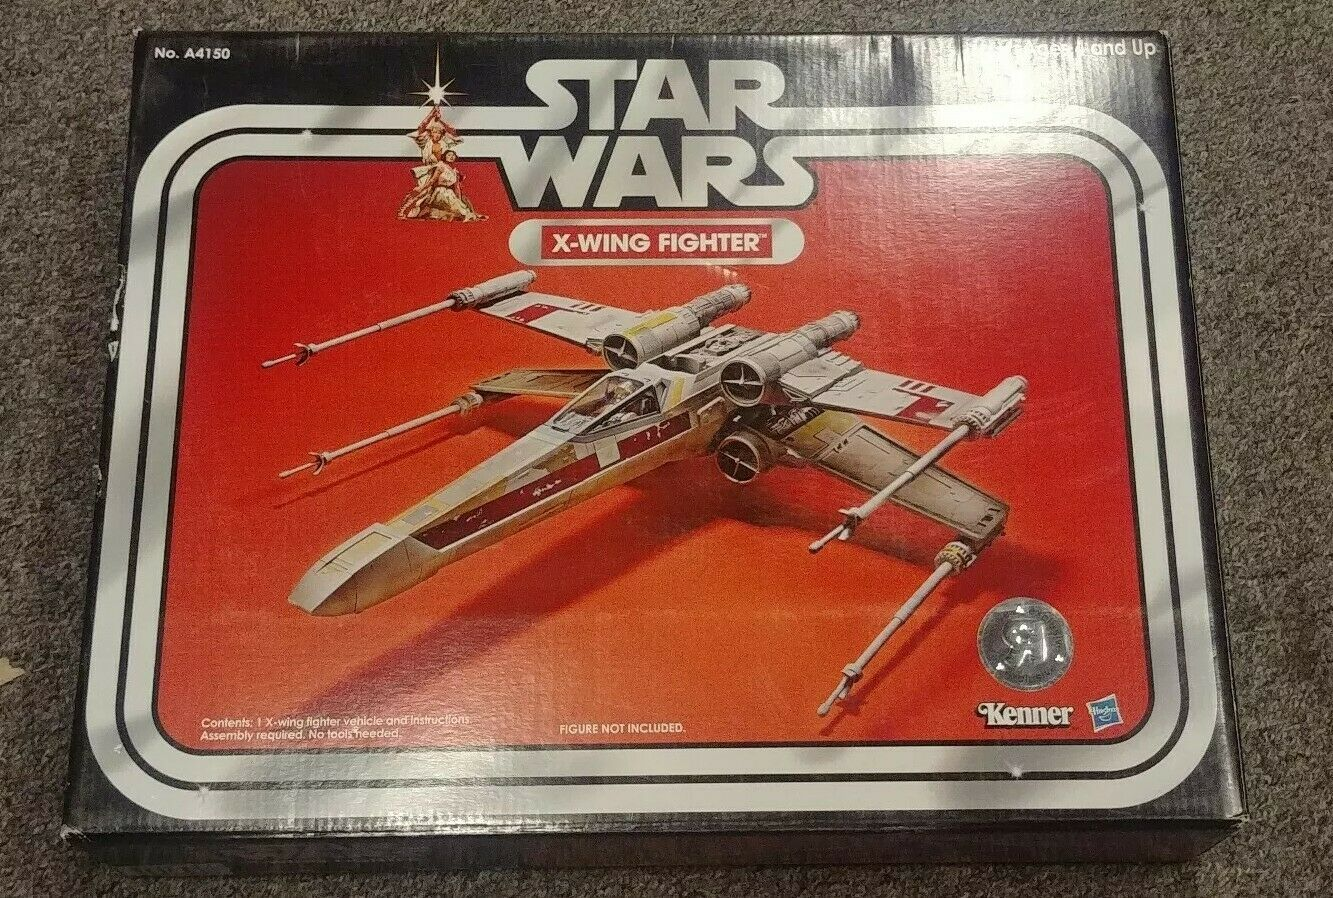 NEW & SEALED  STAR WARS X-WING FIGHTER VINTAGE COLLECTION 2013 KENNER A4150 18-5